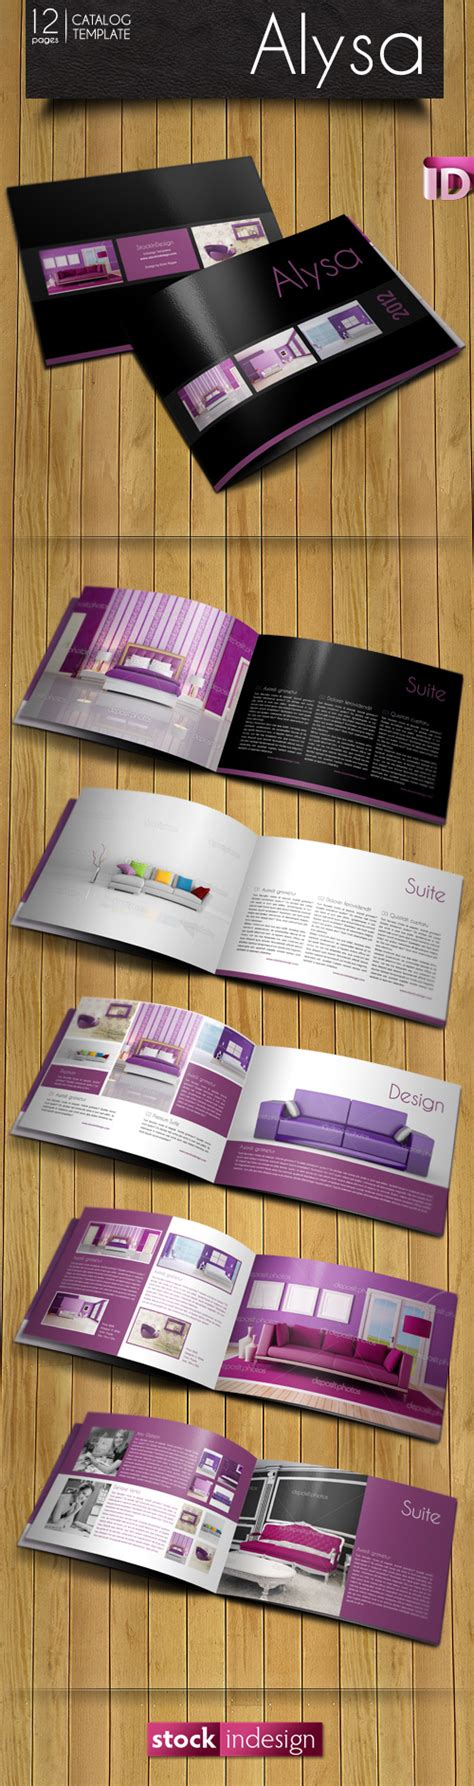 catalog template indesign free stockindesign indesign catalog template alysa stockindesign